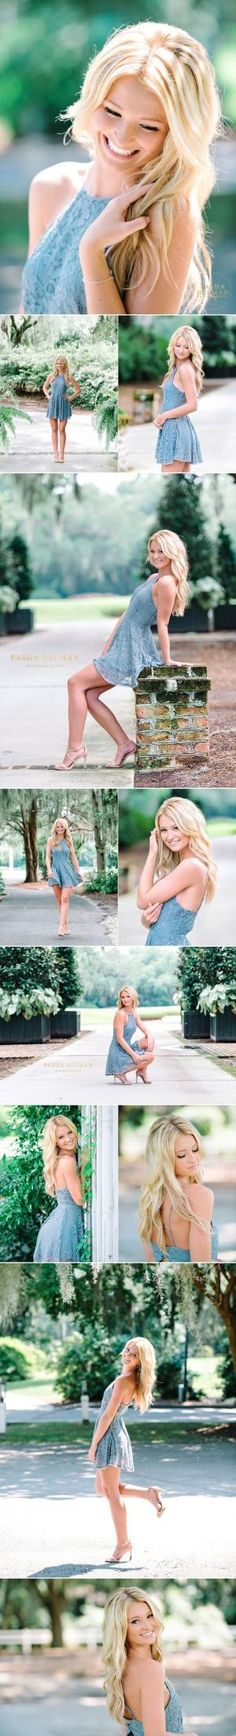 Senior Pictures | Senior Photography | High School Senior Photographers in Charleston and Myrtle Beach | Pasha Belman Photography High School Senior Picture Ideas for Girls by DeeDeeBean